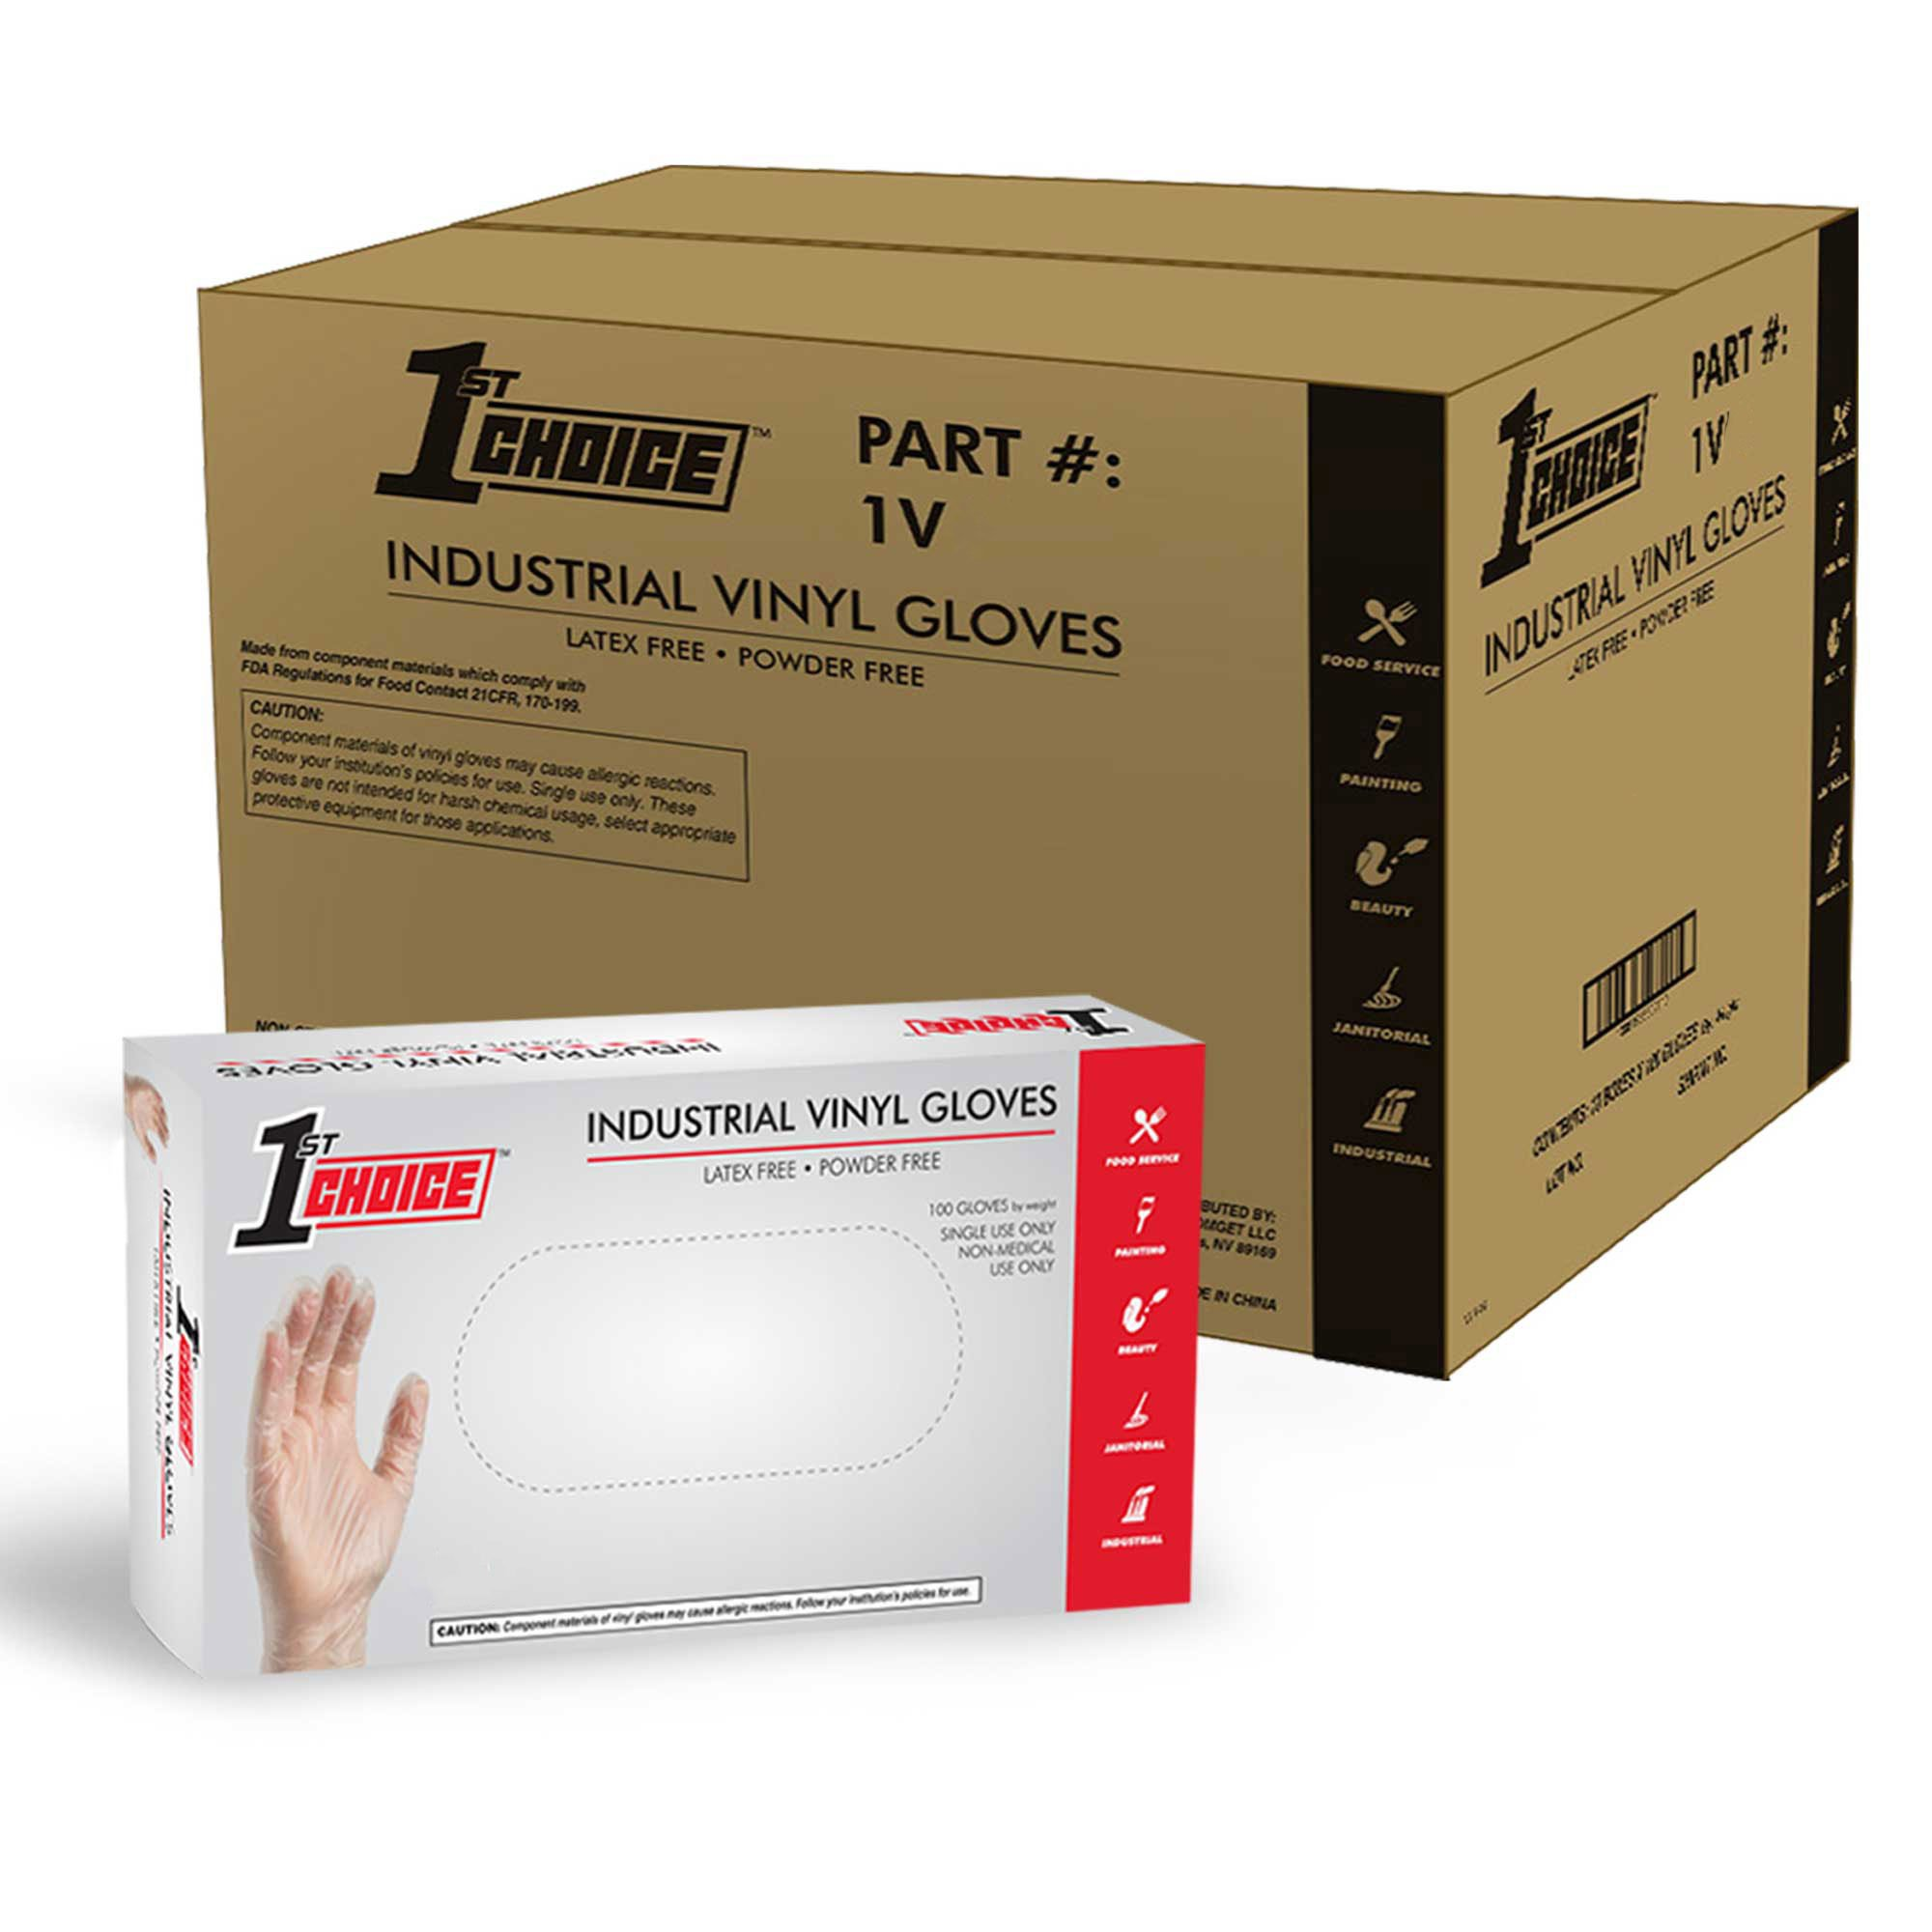 1st Choice Clear Vinyl Disposable Gloves, Case of 1000 Large - Industrial Grade, Latex-Free by 1st Choice